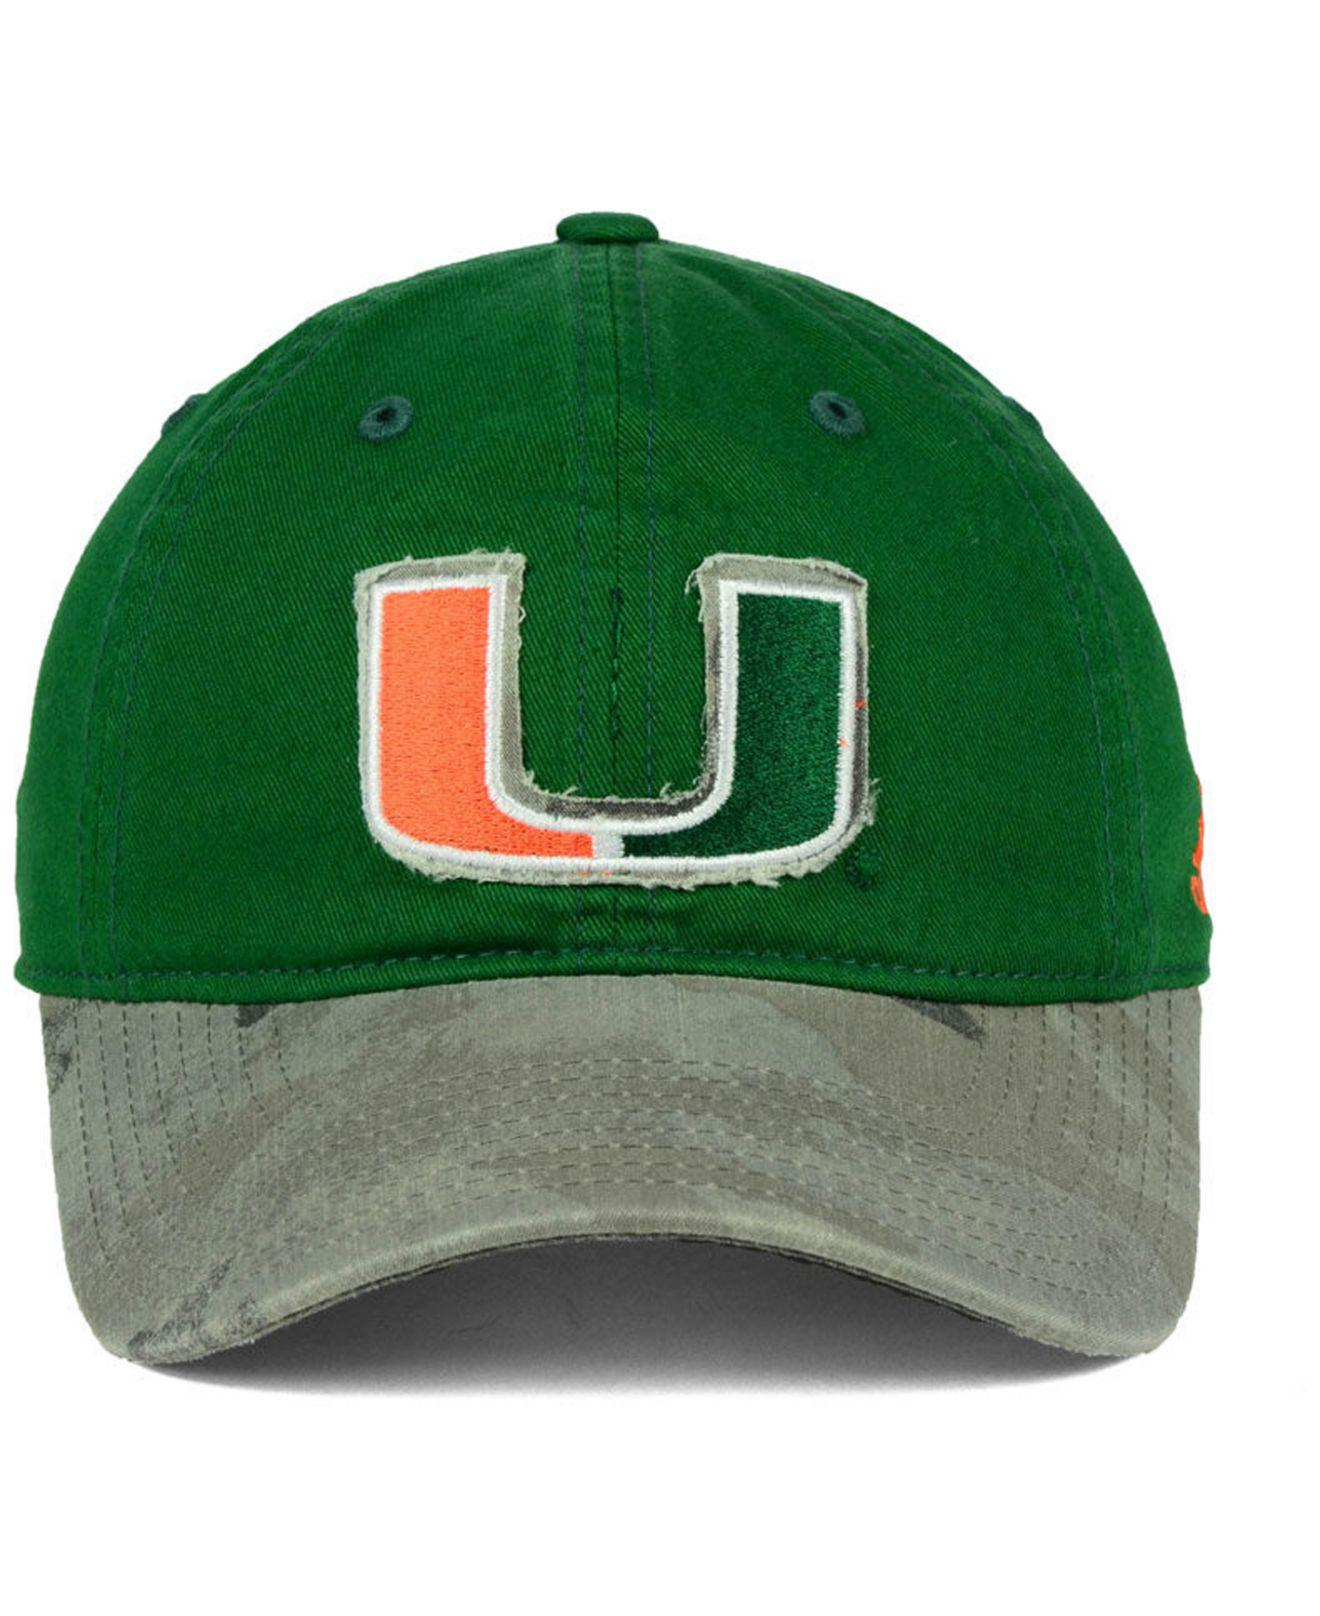 separation shoes 1f1f8 3091b ... new style lyst adidas miami hurricanes camo code slouch cap in green  for men eac6f 57fa5